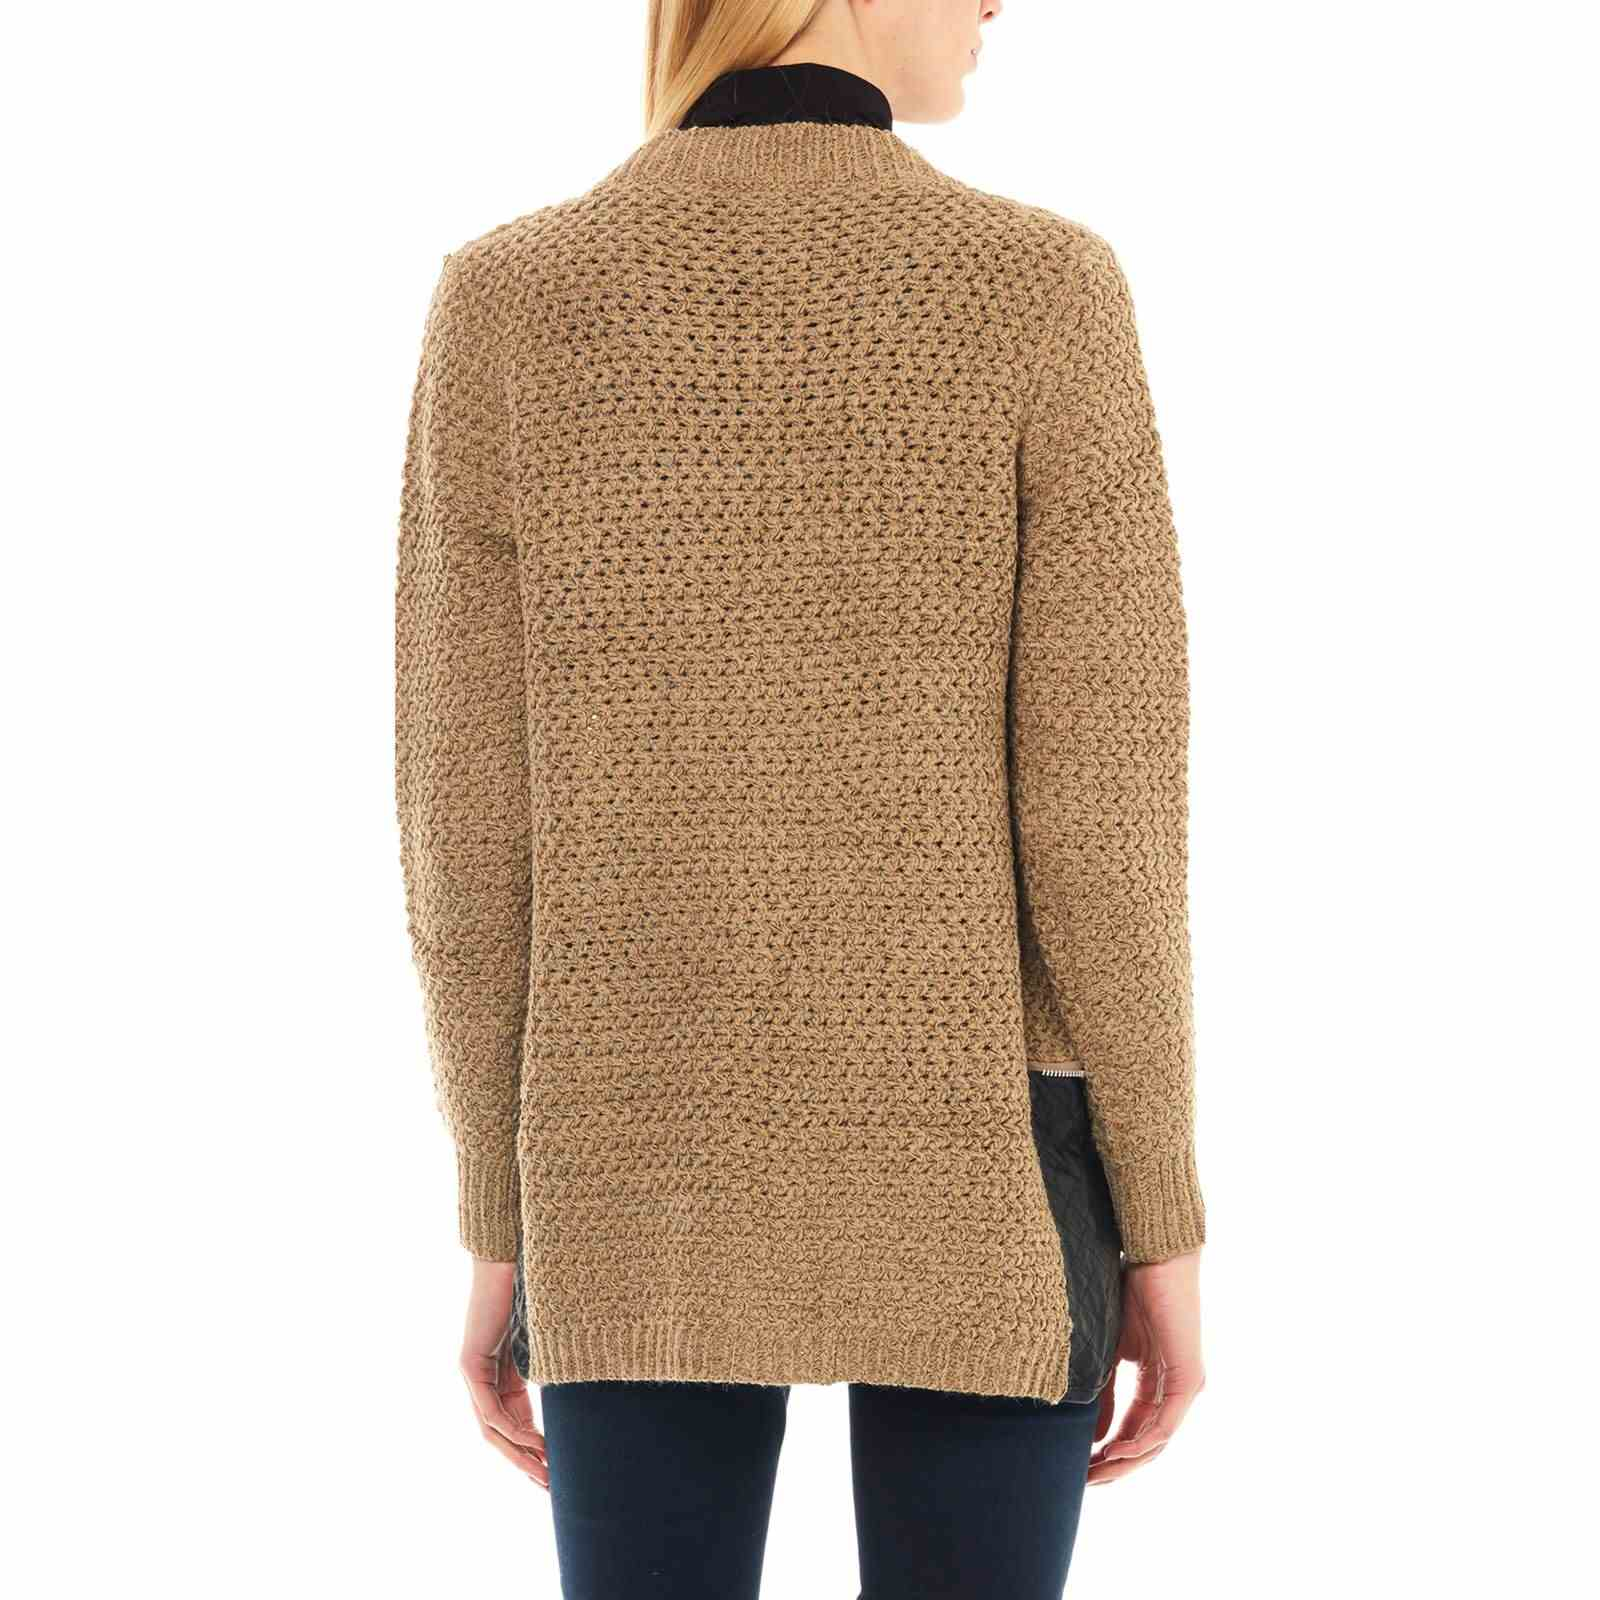 55f7a17826b Brandalley Cachemire Gilet Et Maille Taupe S5YIIq